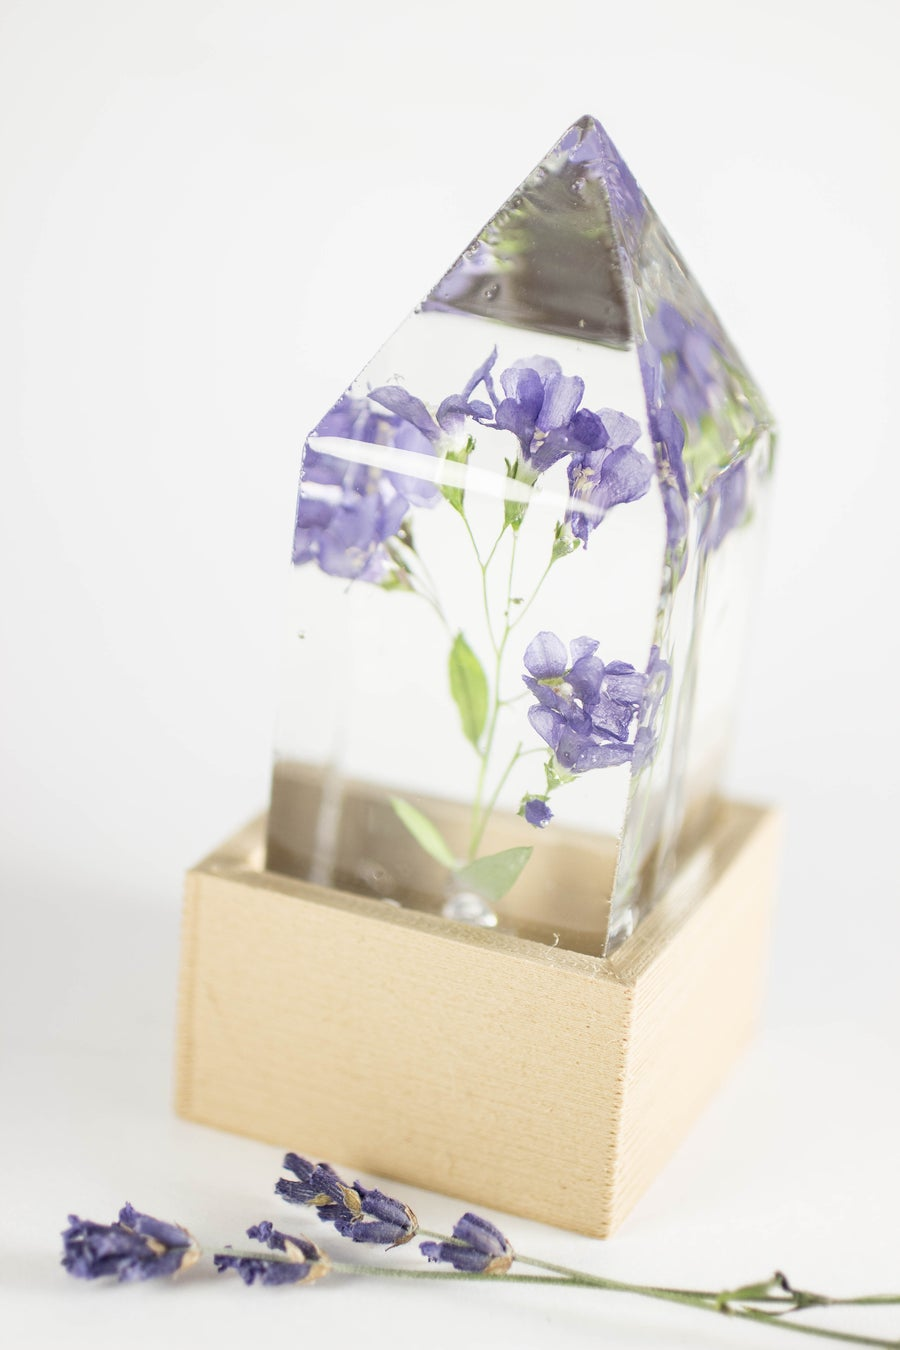 Image of Jacob's Ladder (Polemonium reptans) - Floral Desk Light #4